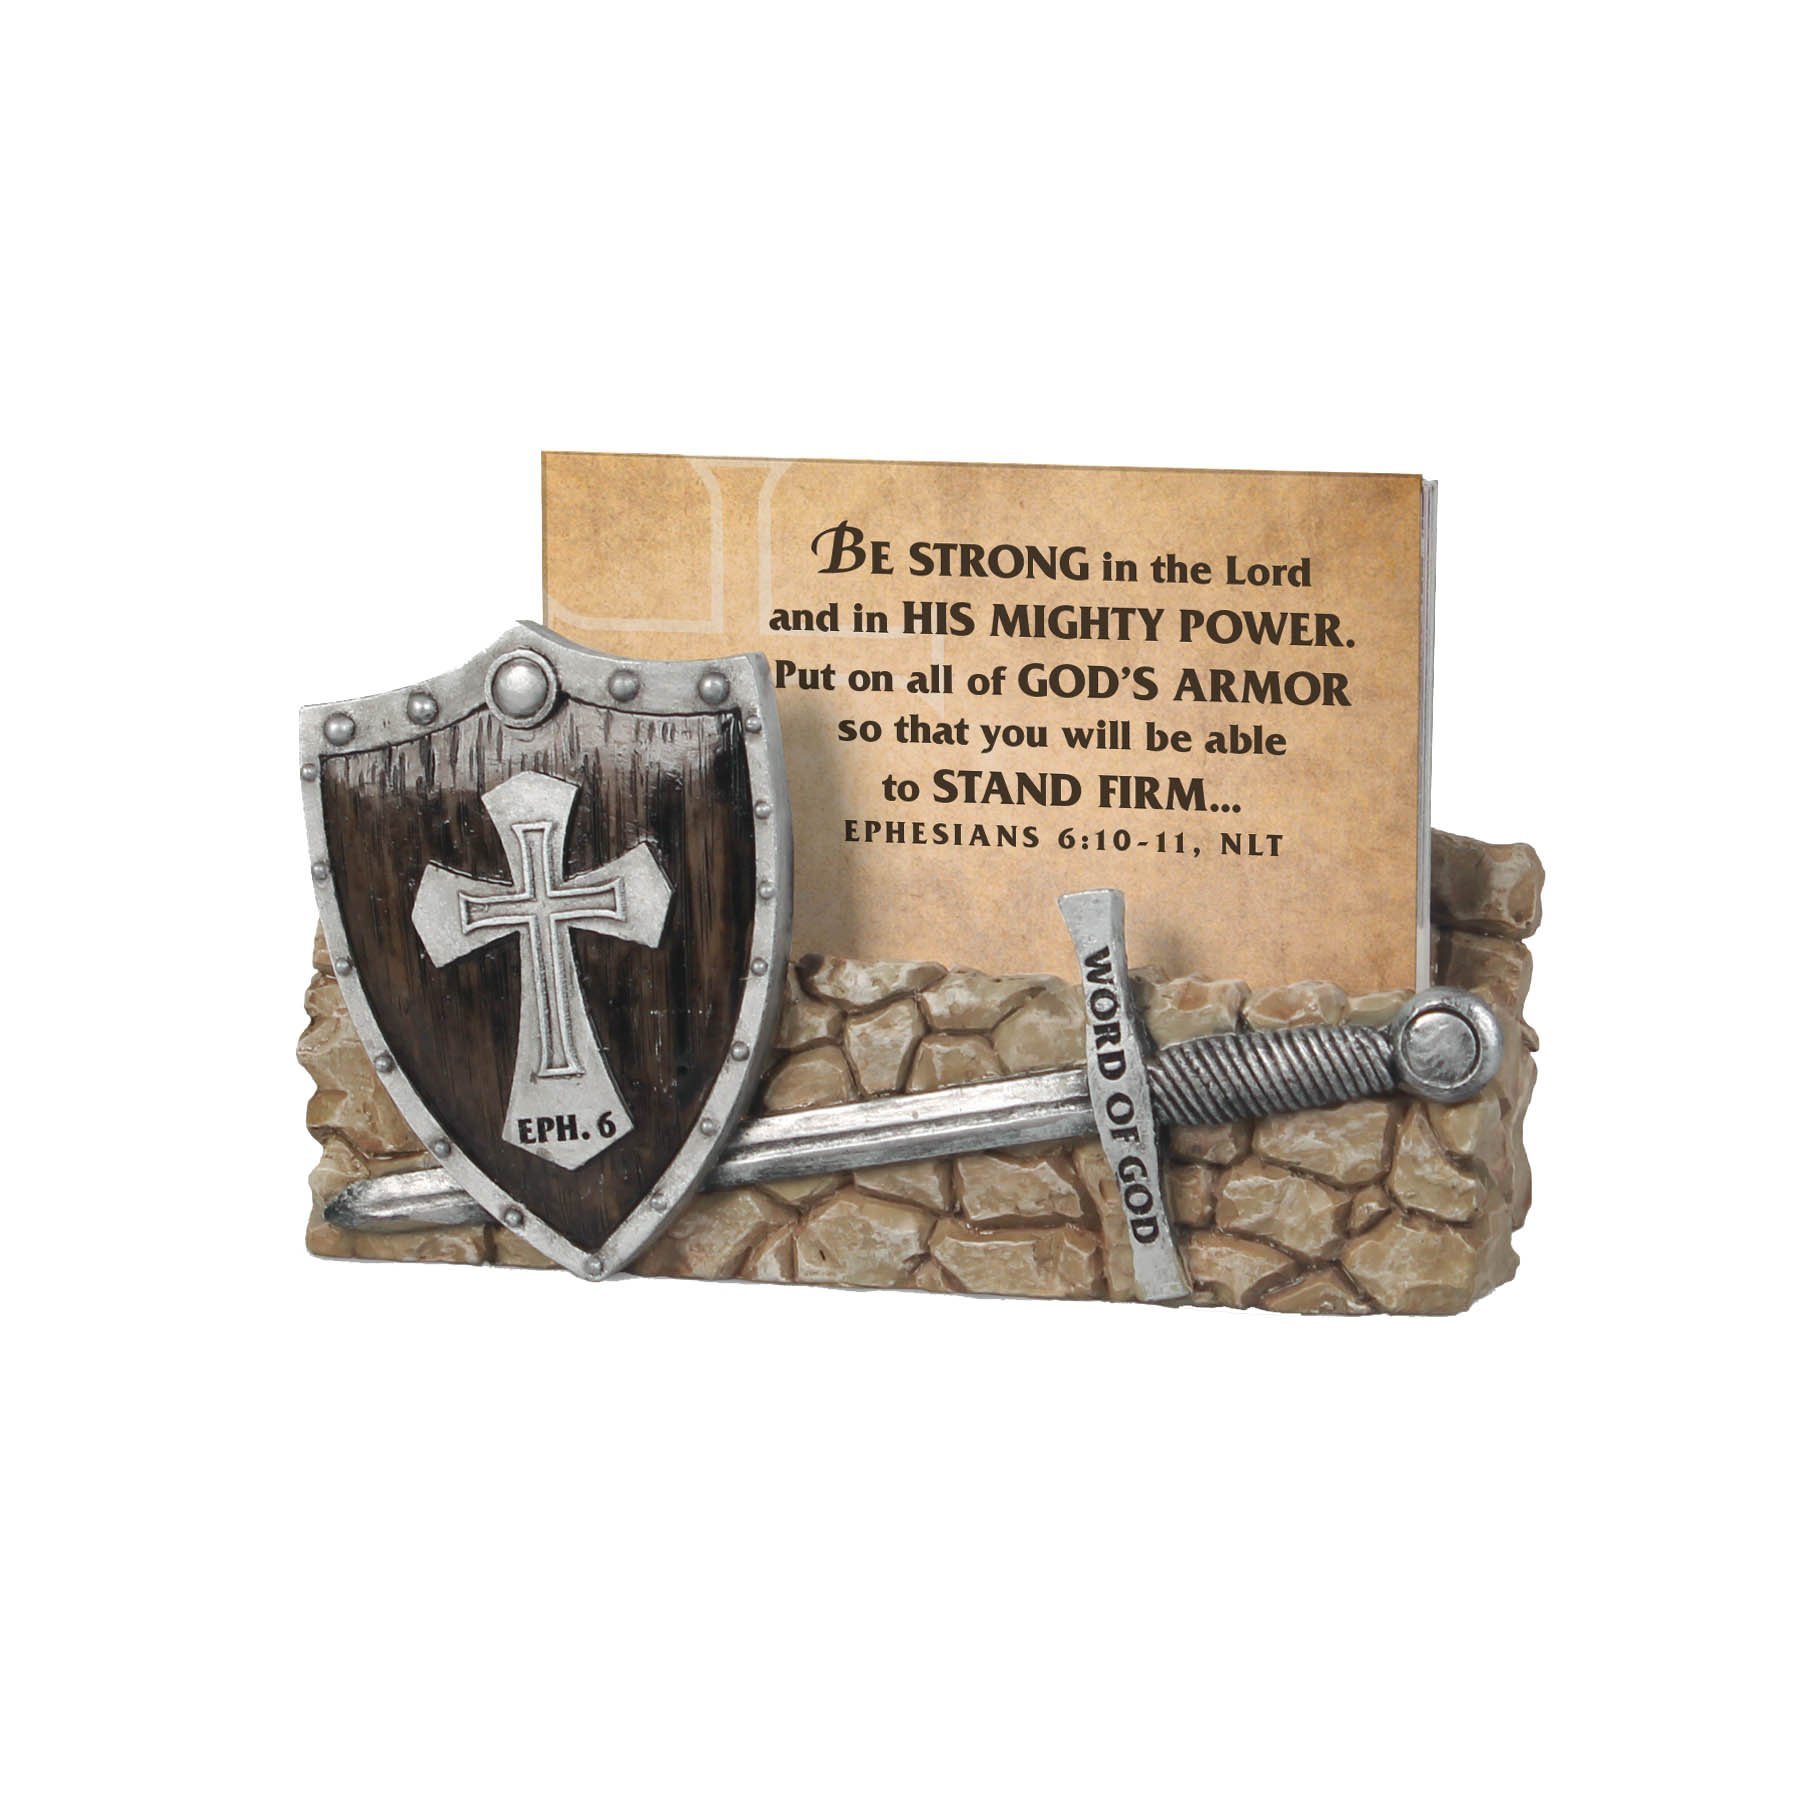 Lighthouse Christian Products Word of God Armor of Godwit 30 Cards Scripture Card Holder, 3 1/2 x 4 1/2 x 1'' by Lighthouse Christian Products